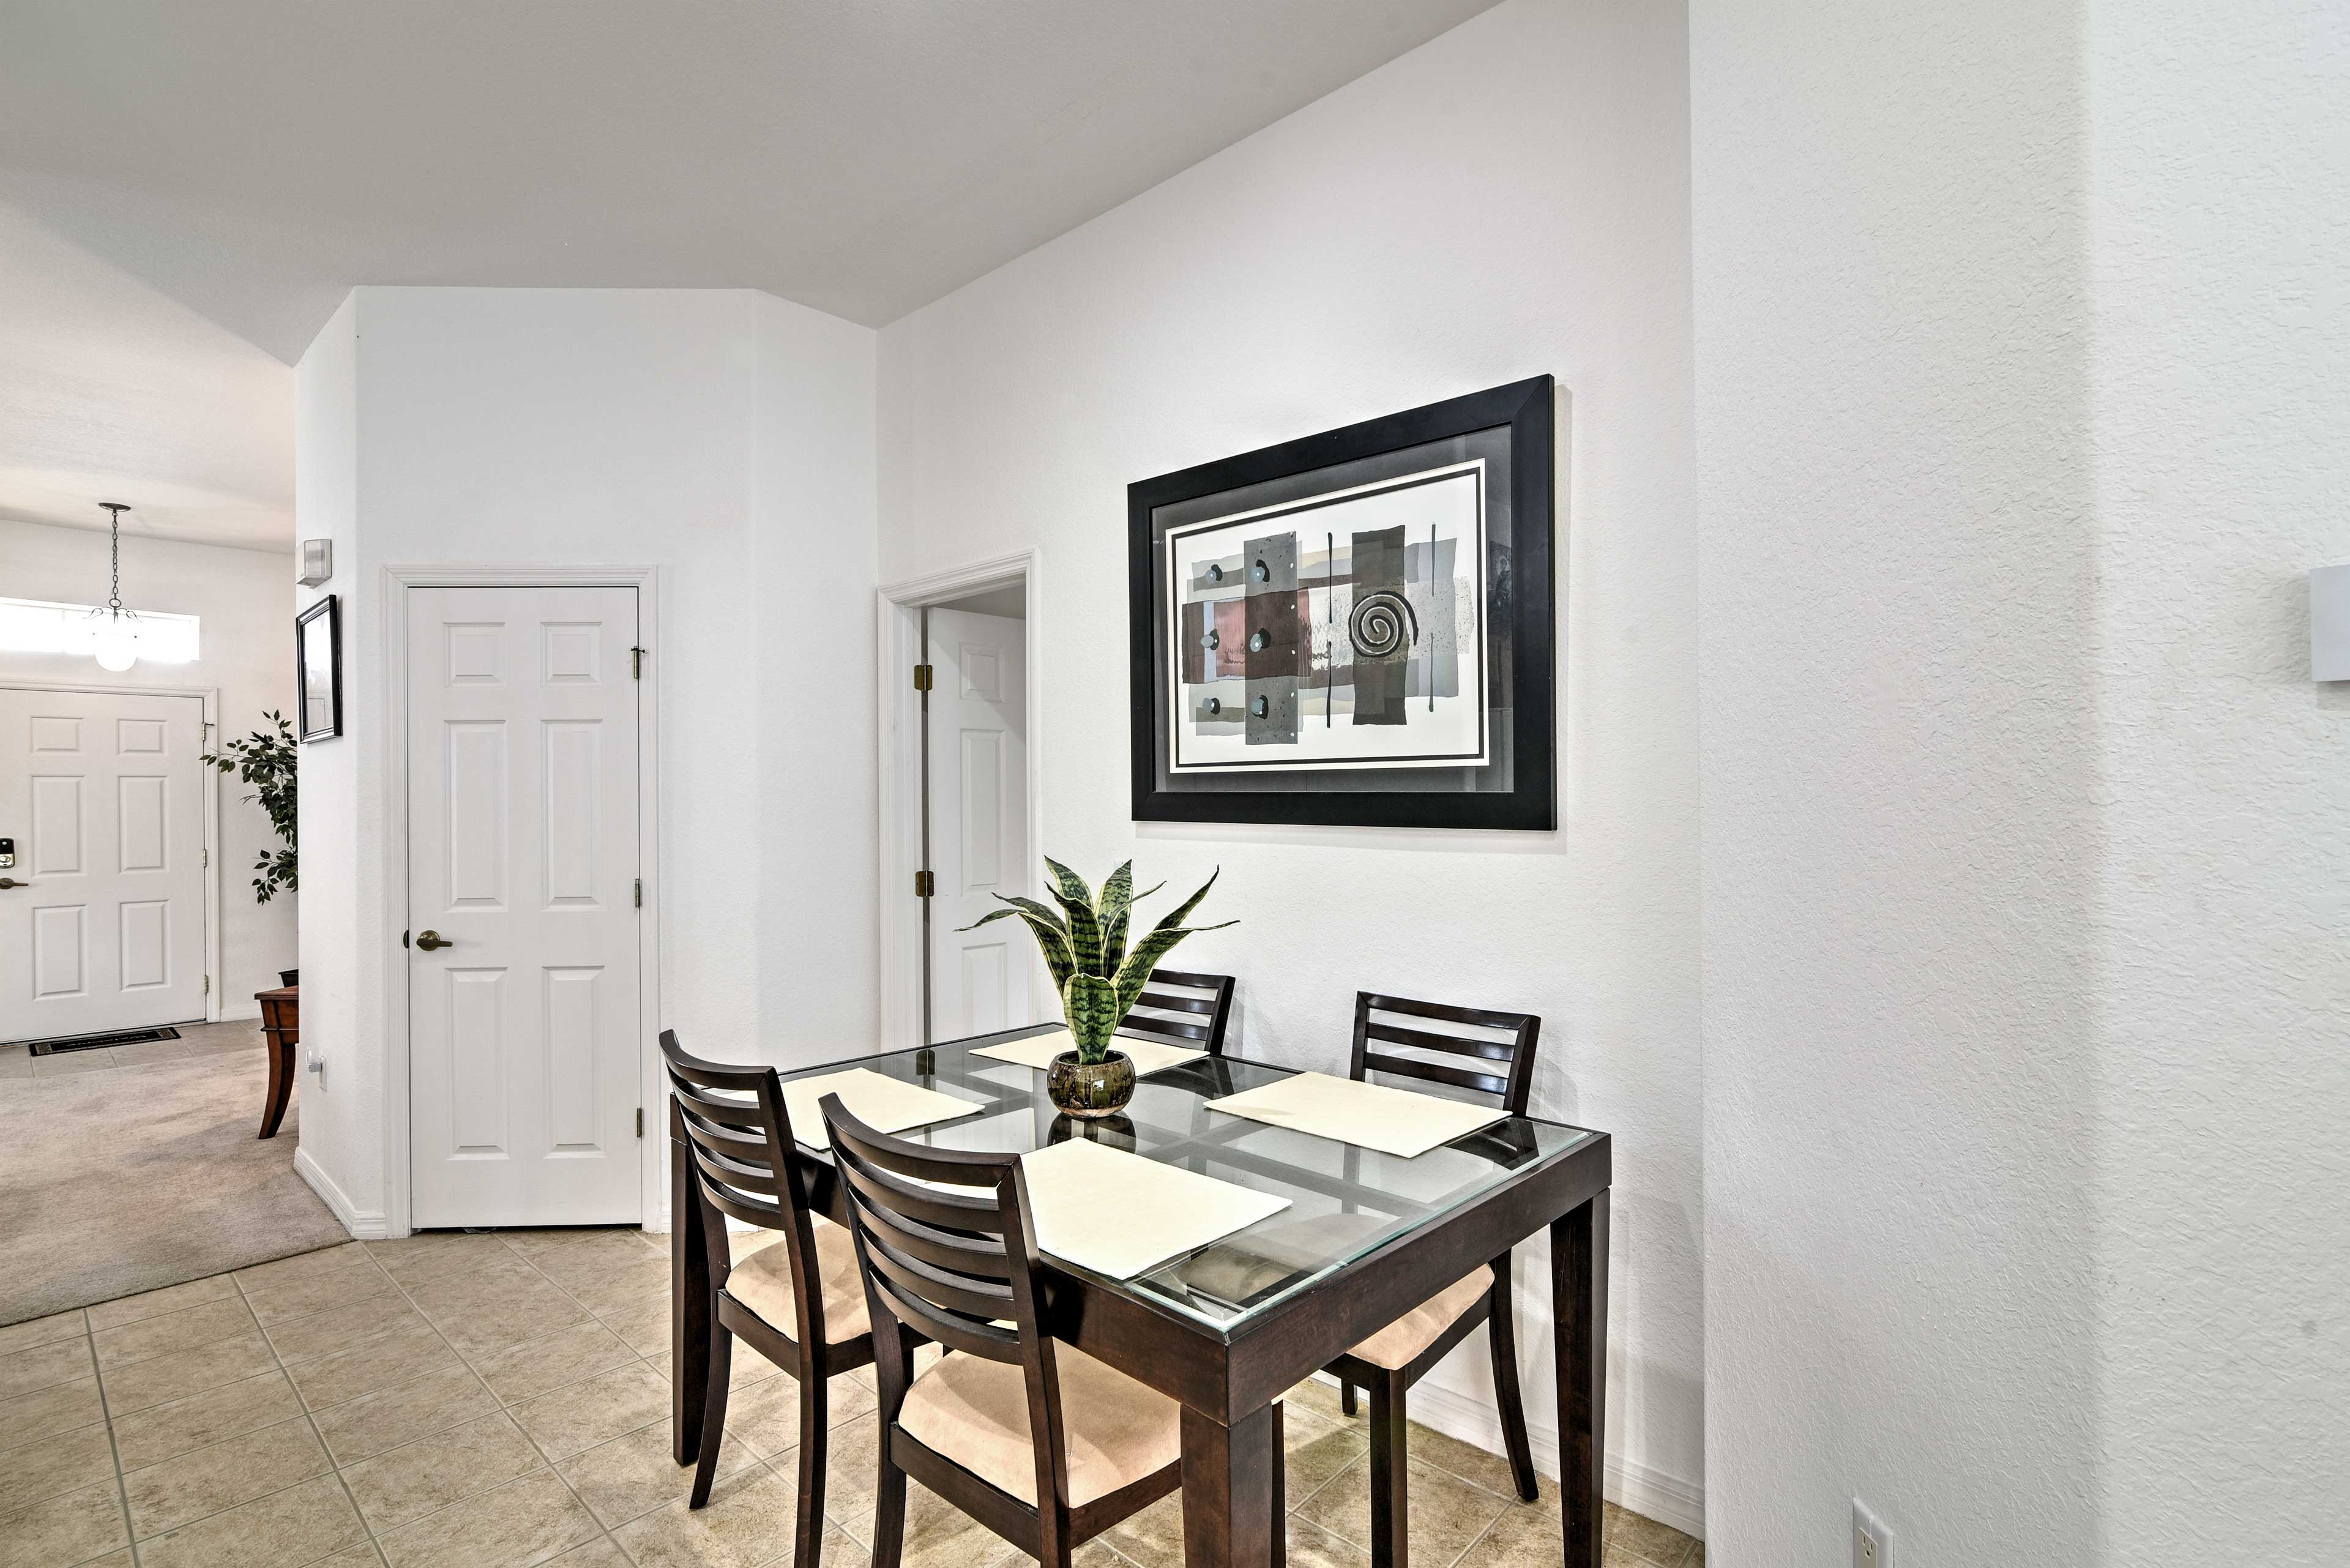 Enjoy a nice meal or play a game of cards at the table with seating for 4.